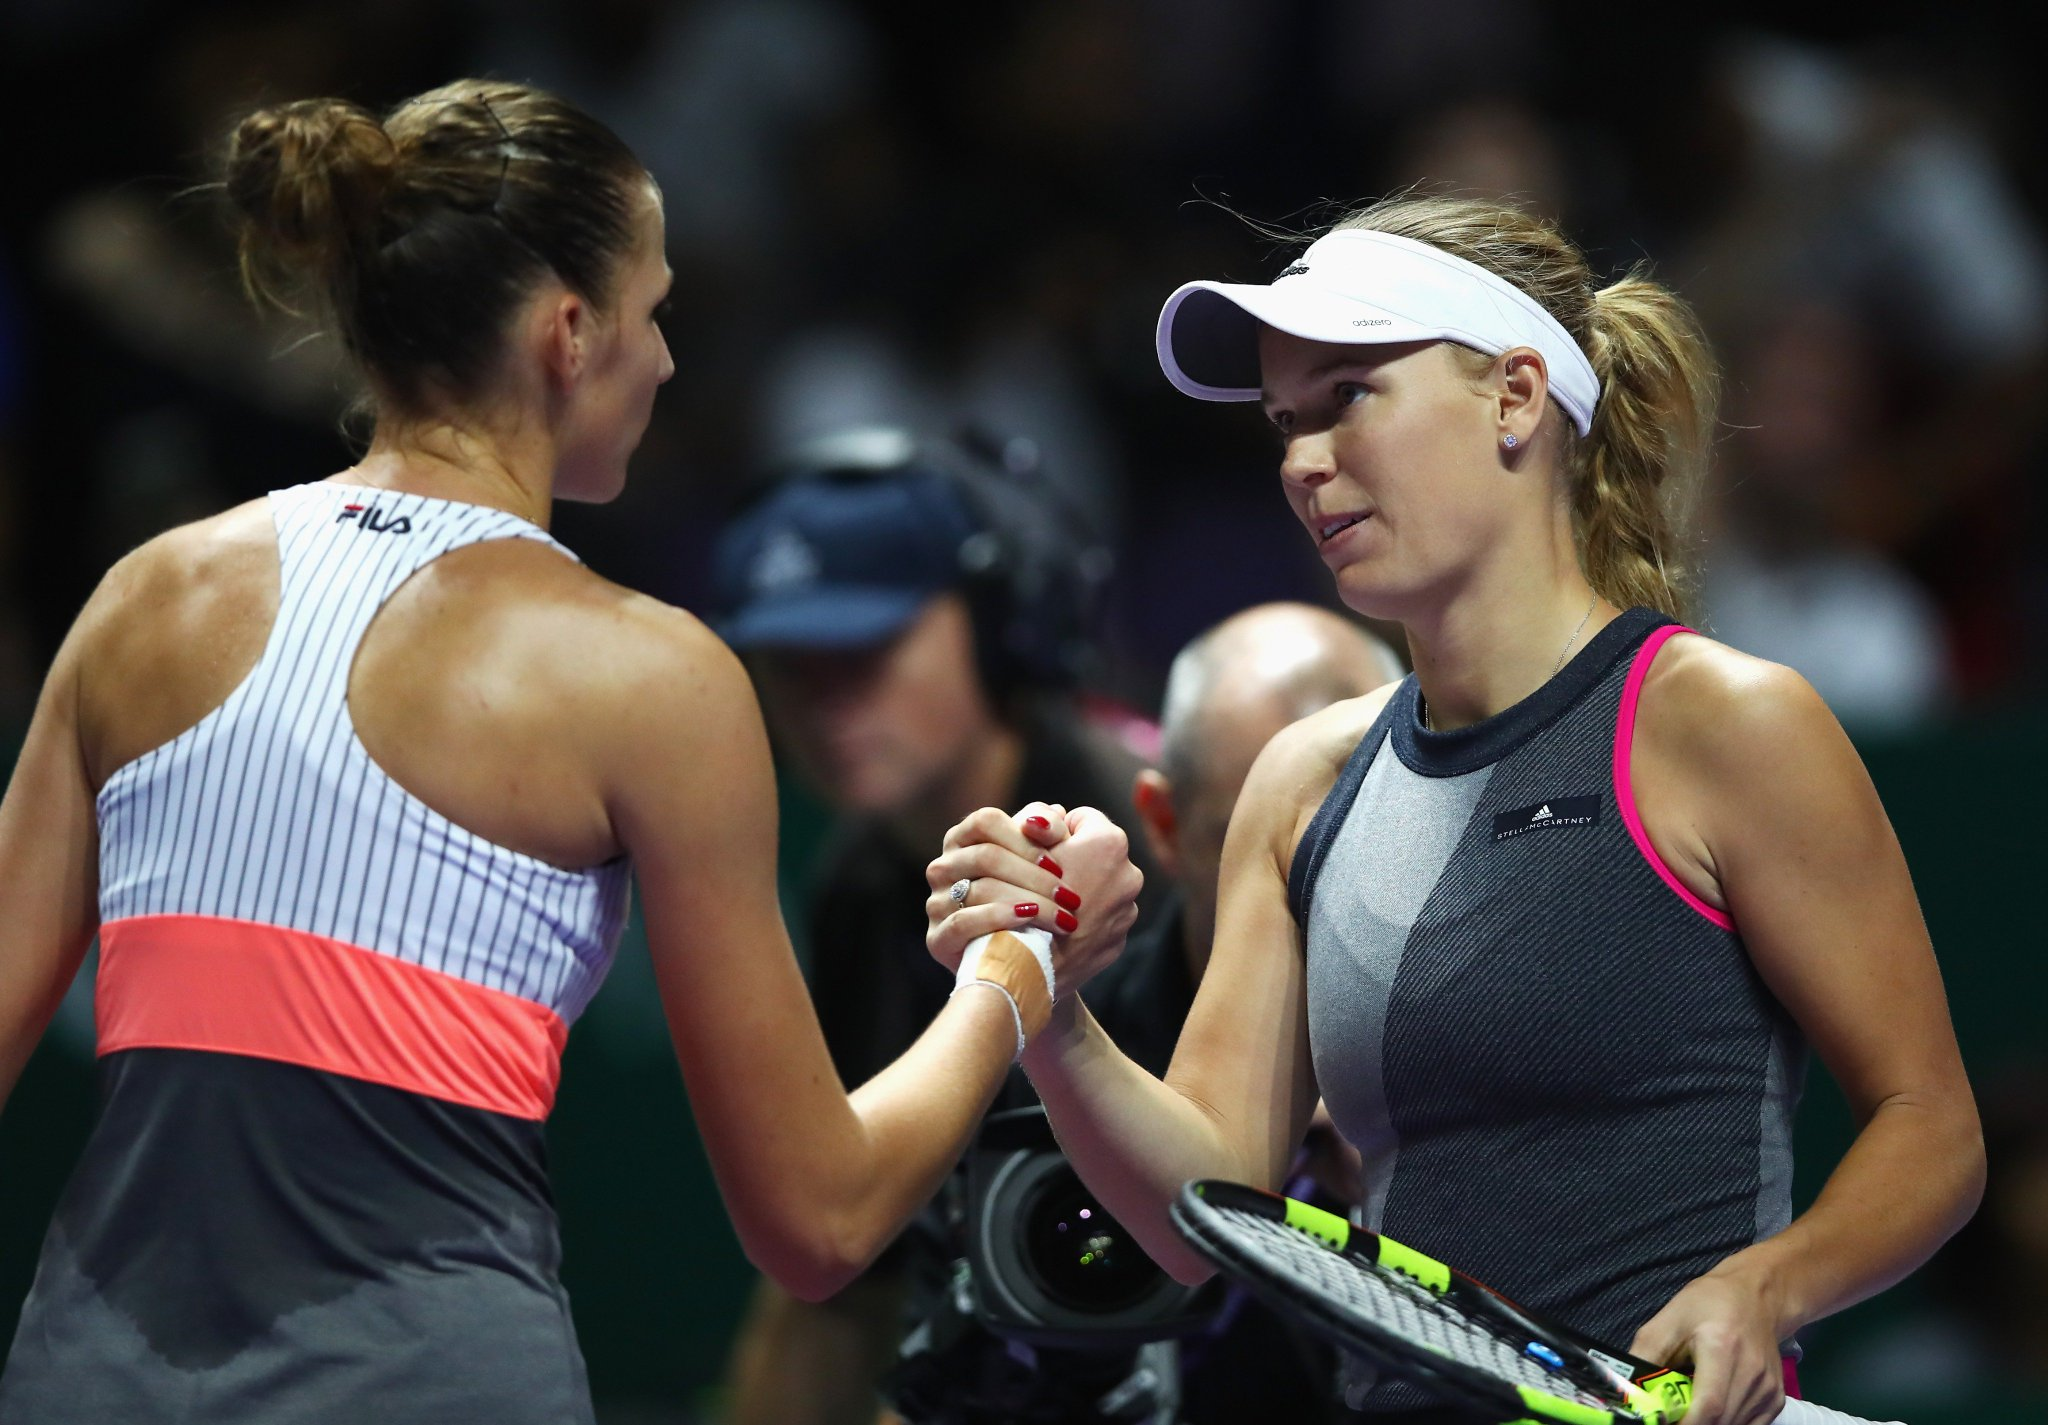 .@CaroWozniacki and @KaPliskova are up next at @WTAFinalsSG!  Relive their rivalry in ��--> https://t.co/lfwclWOlyg https://t.co/swurnuP4rM